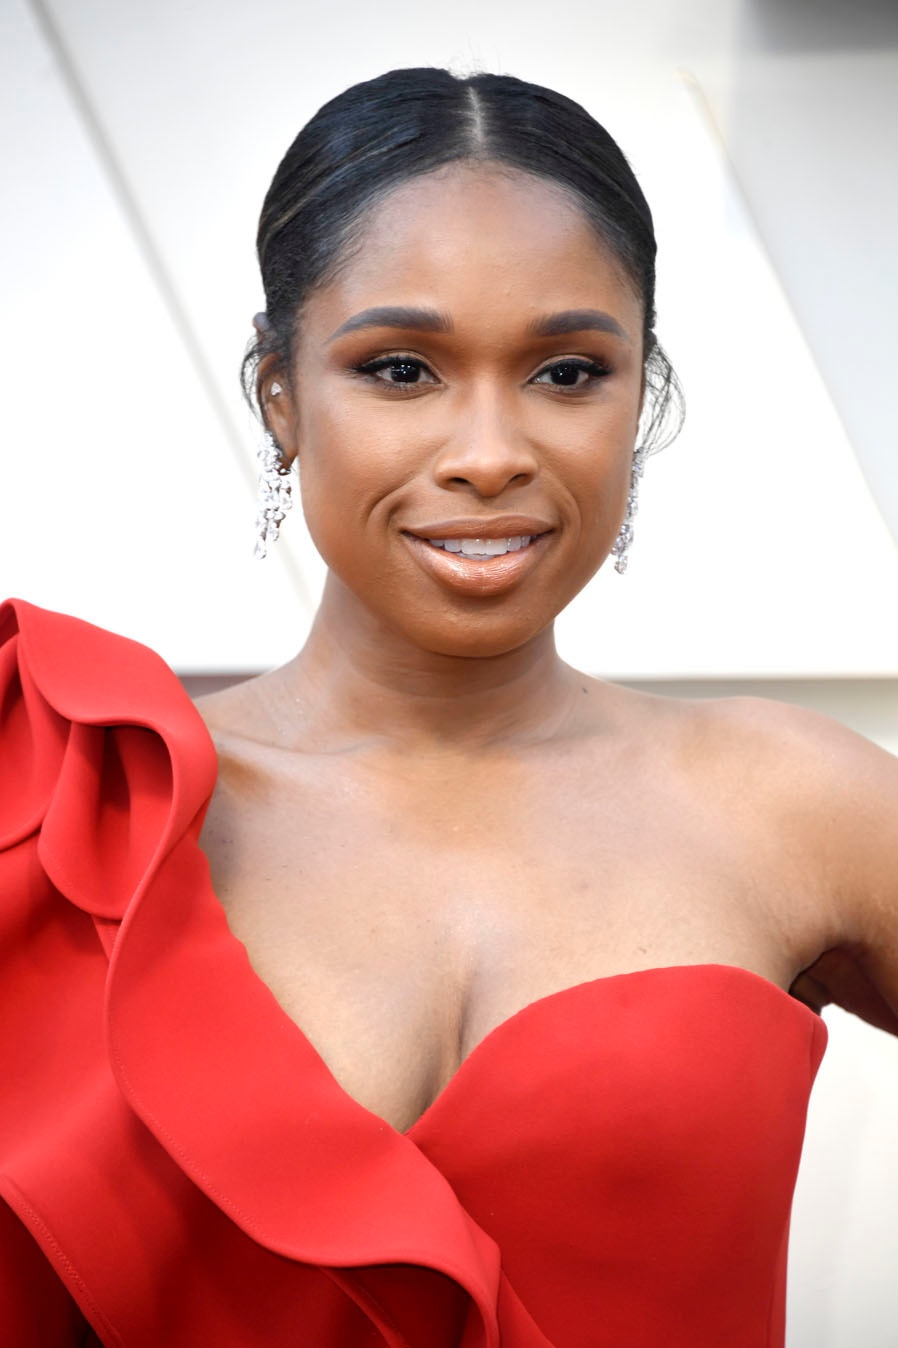 """Jennifer Hudson's Monochrome Moment - Long before she took the stage to belt out """"I'll Fight"""" (to mixed reviews, says the Internet), JHud was looking positively smashing in red on the red carpet. The slightly wispy center-parted updo was a brilliant choice, drawing focus to Hudson's flawlessly symmetrical face. The icing on the cake? Those mocha eyes, cheeks and lips. Stunning."""